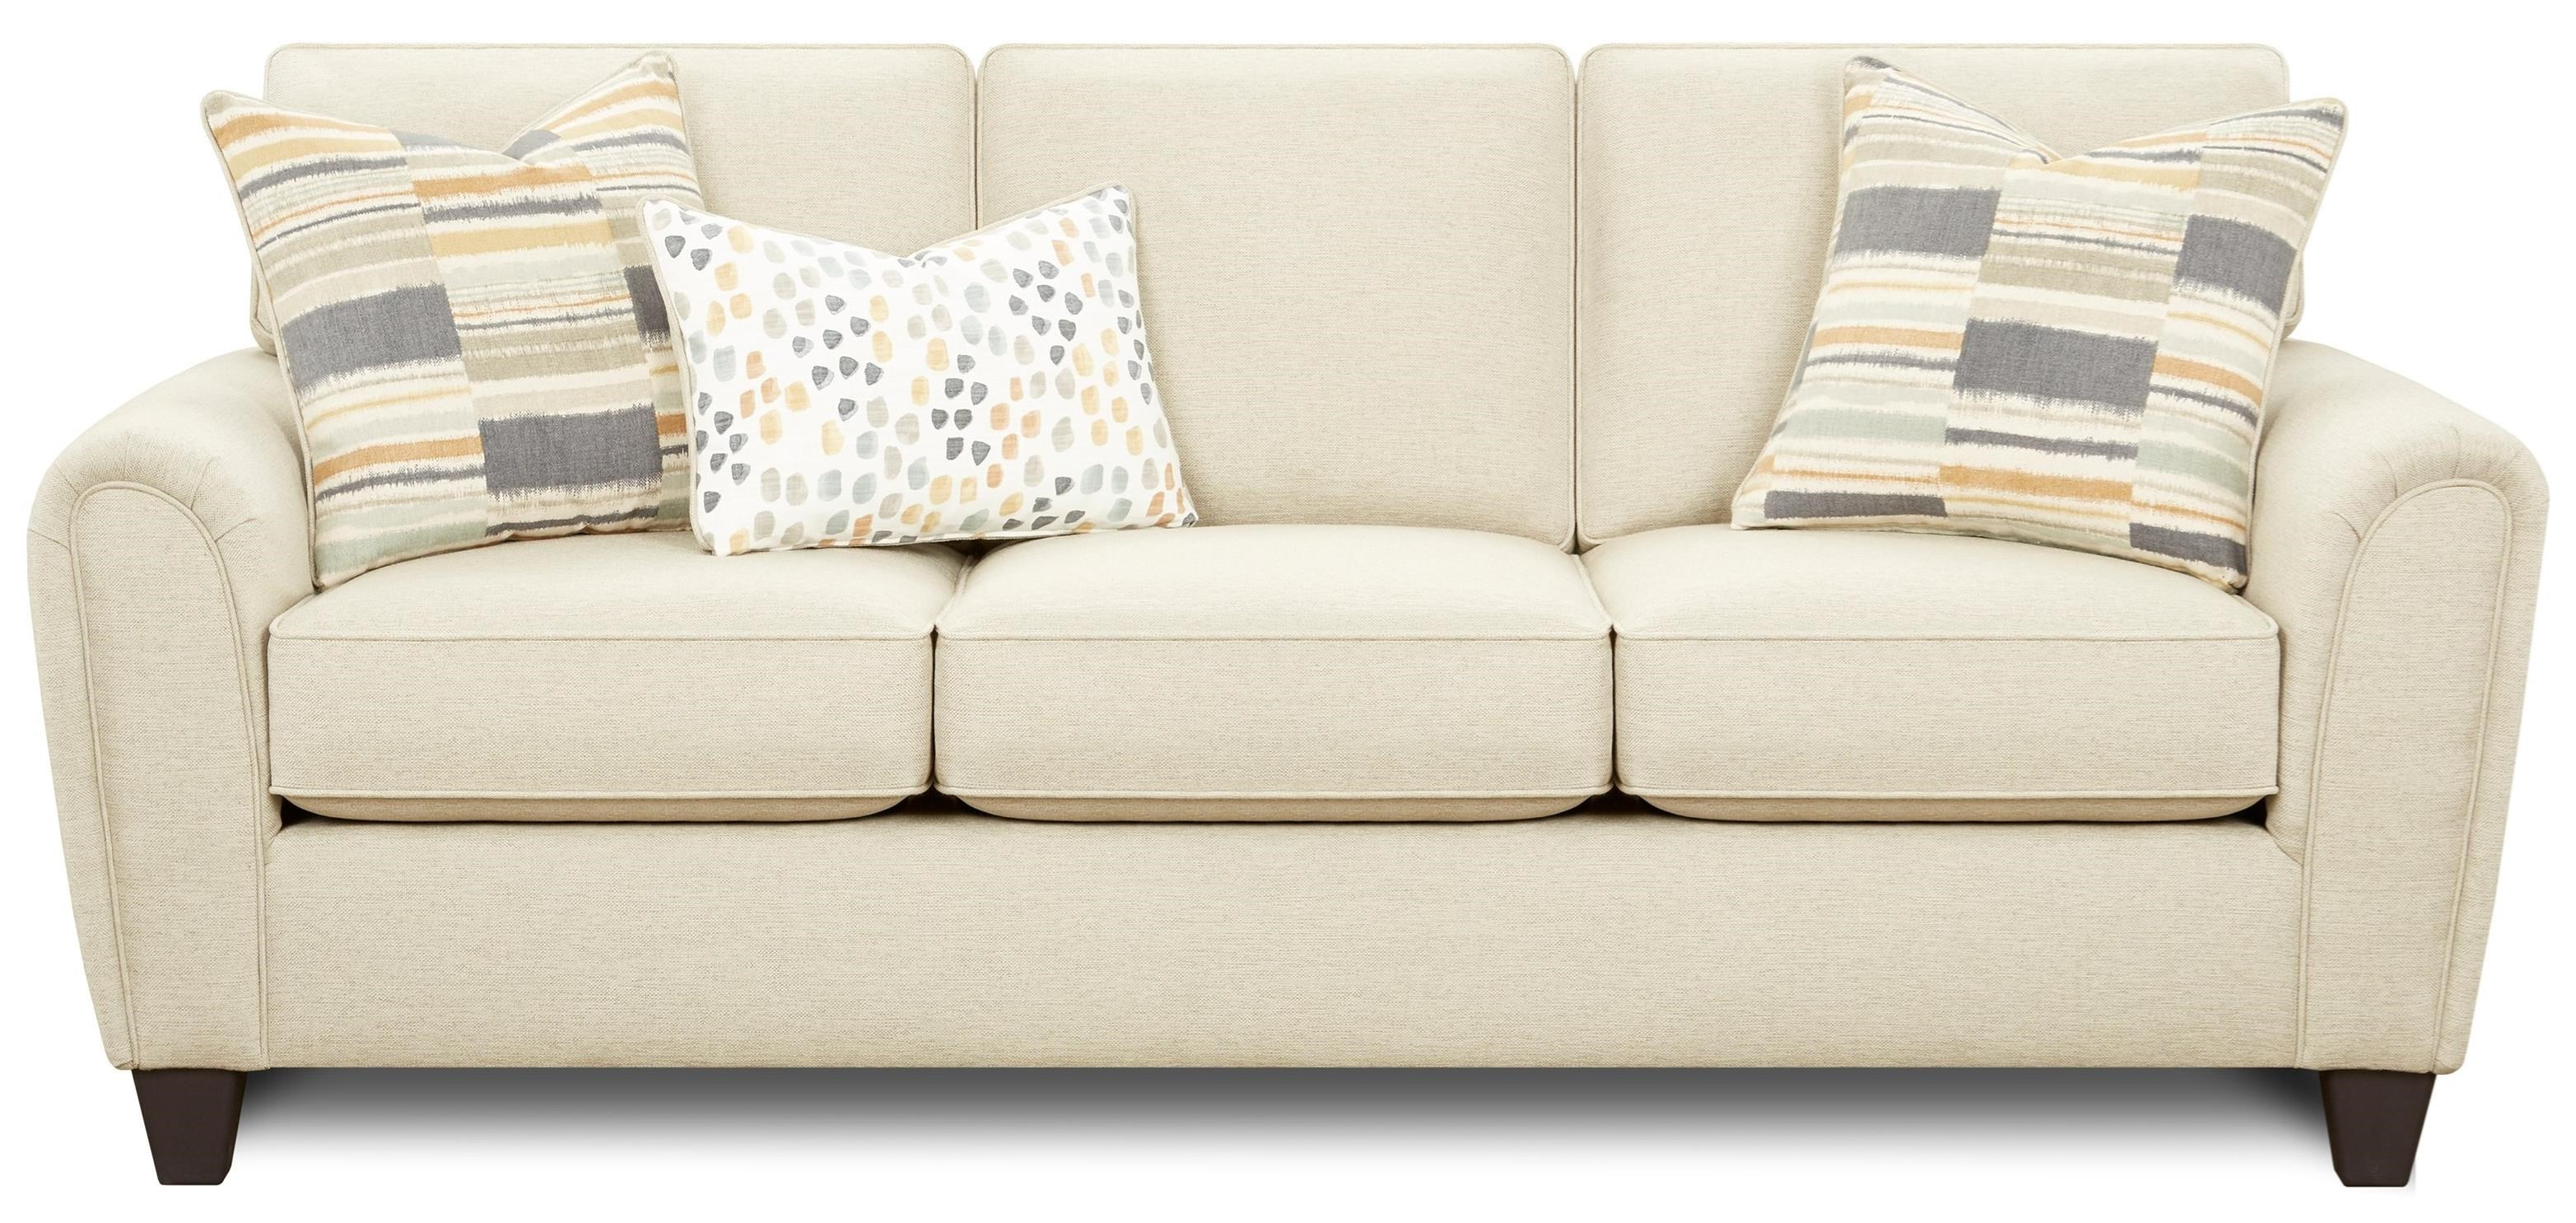 49-00 Sofa Sleeper by Fusion Furniture at Wilcox Furniture